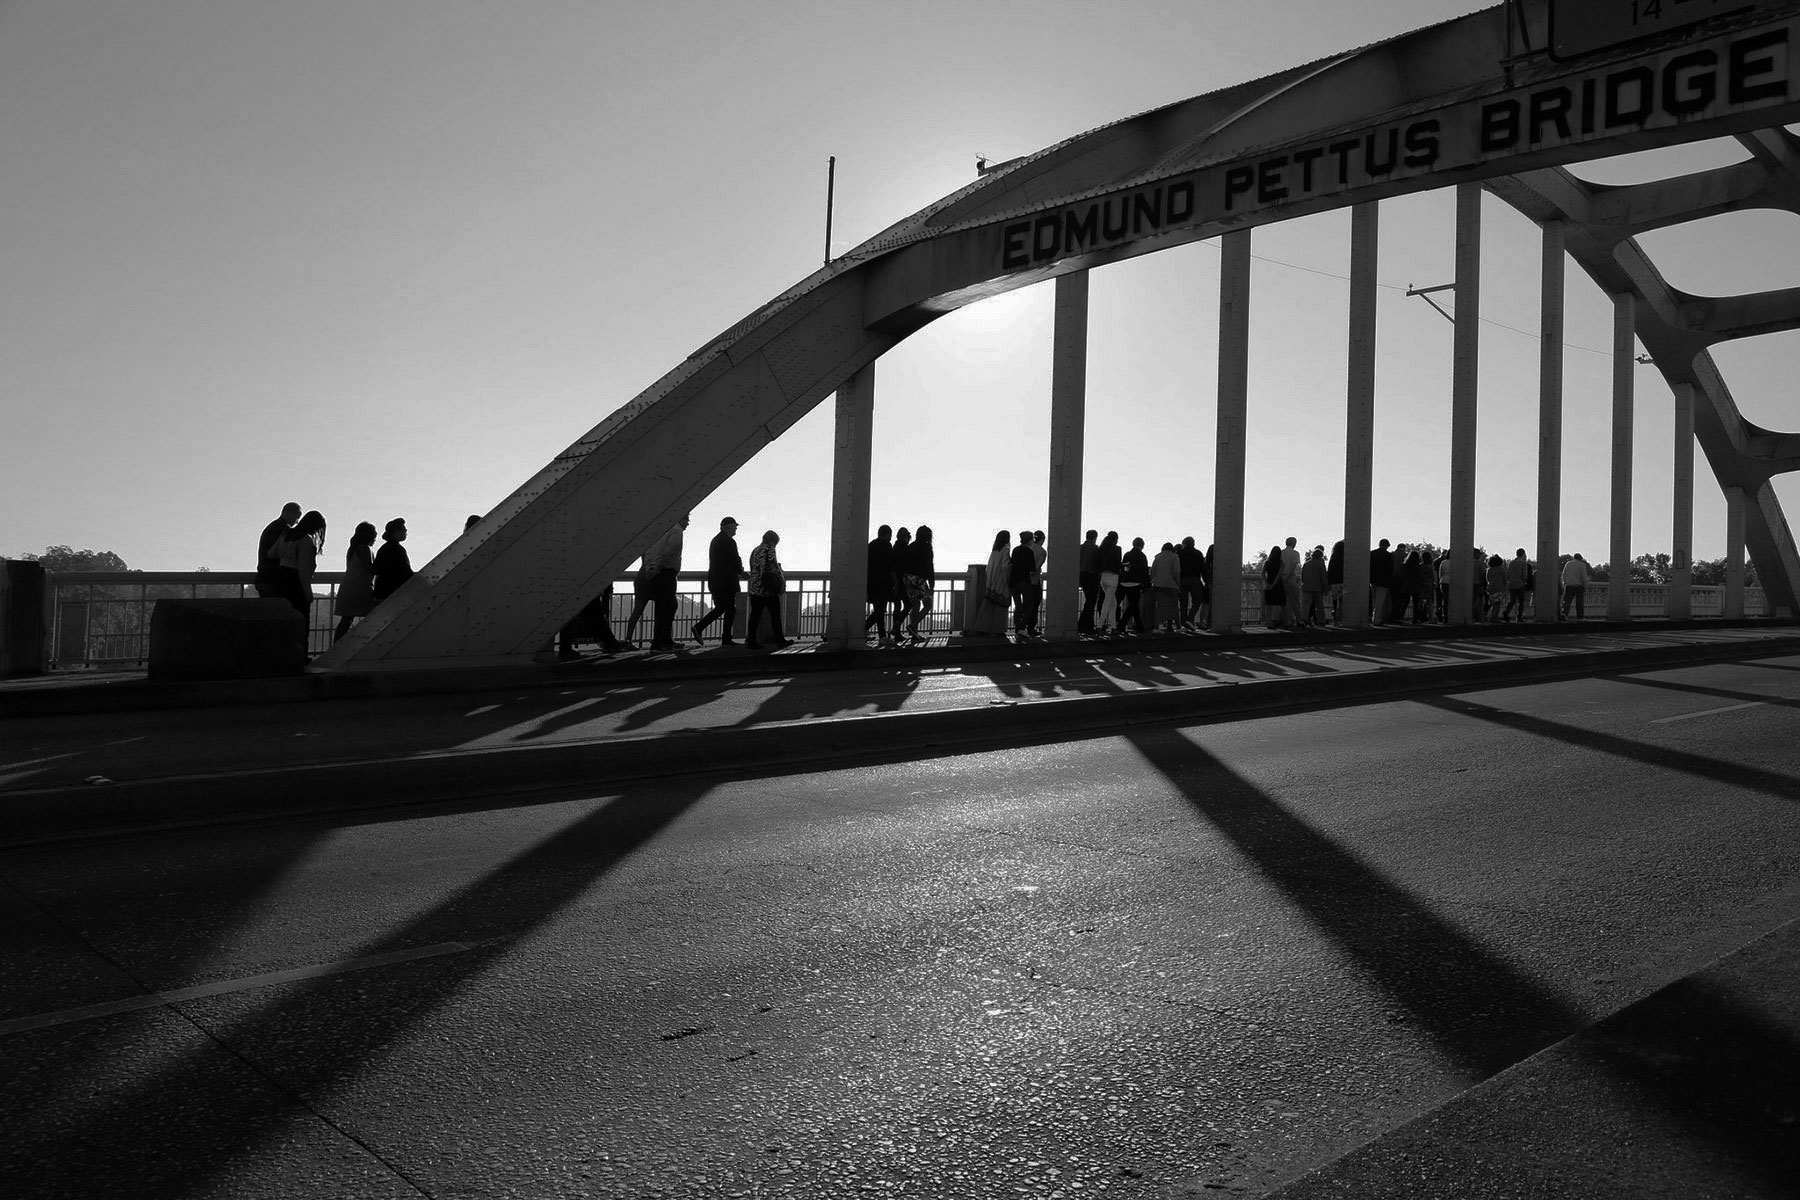 Project Pilgrimage - Edmund Pettis Bridge